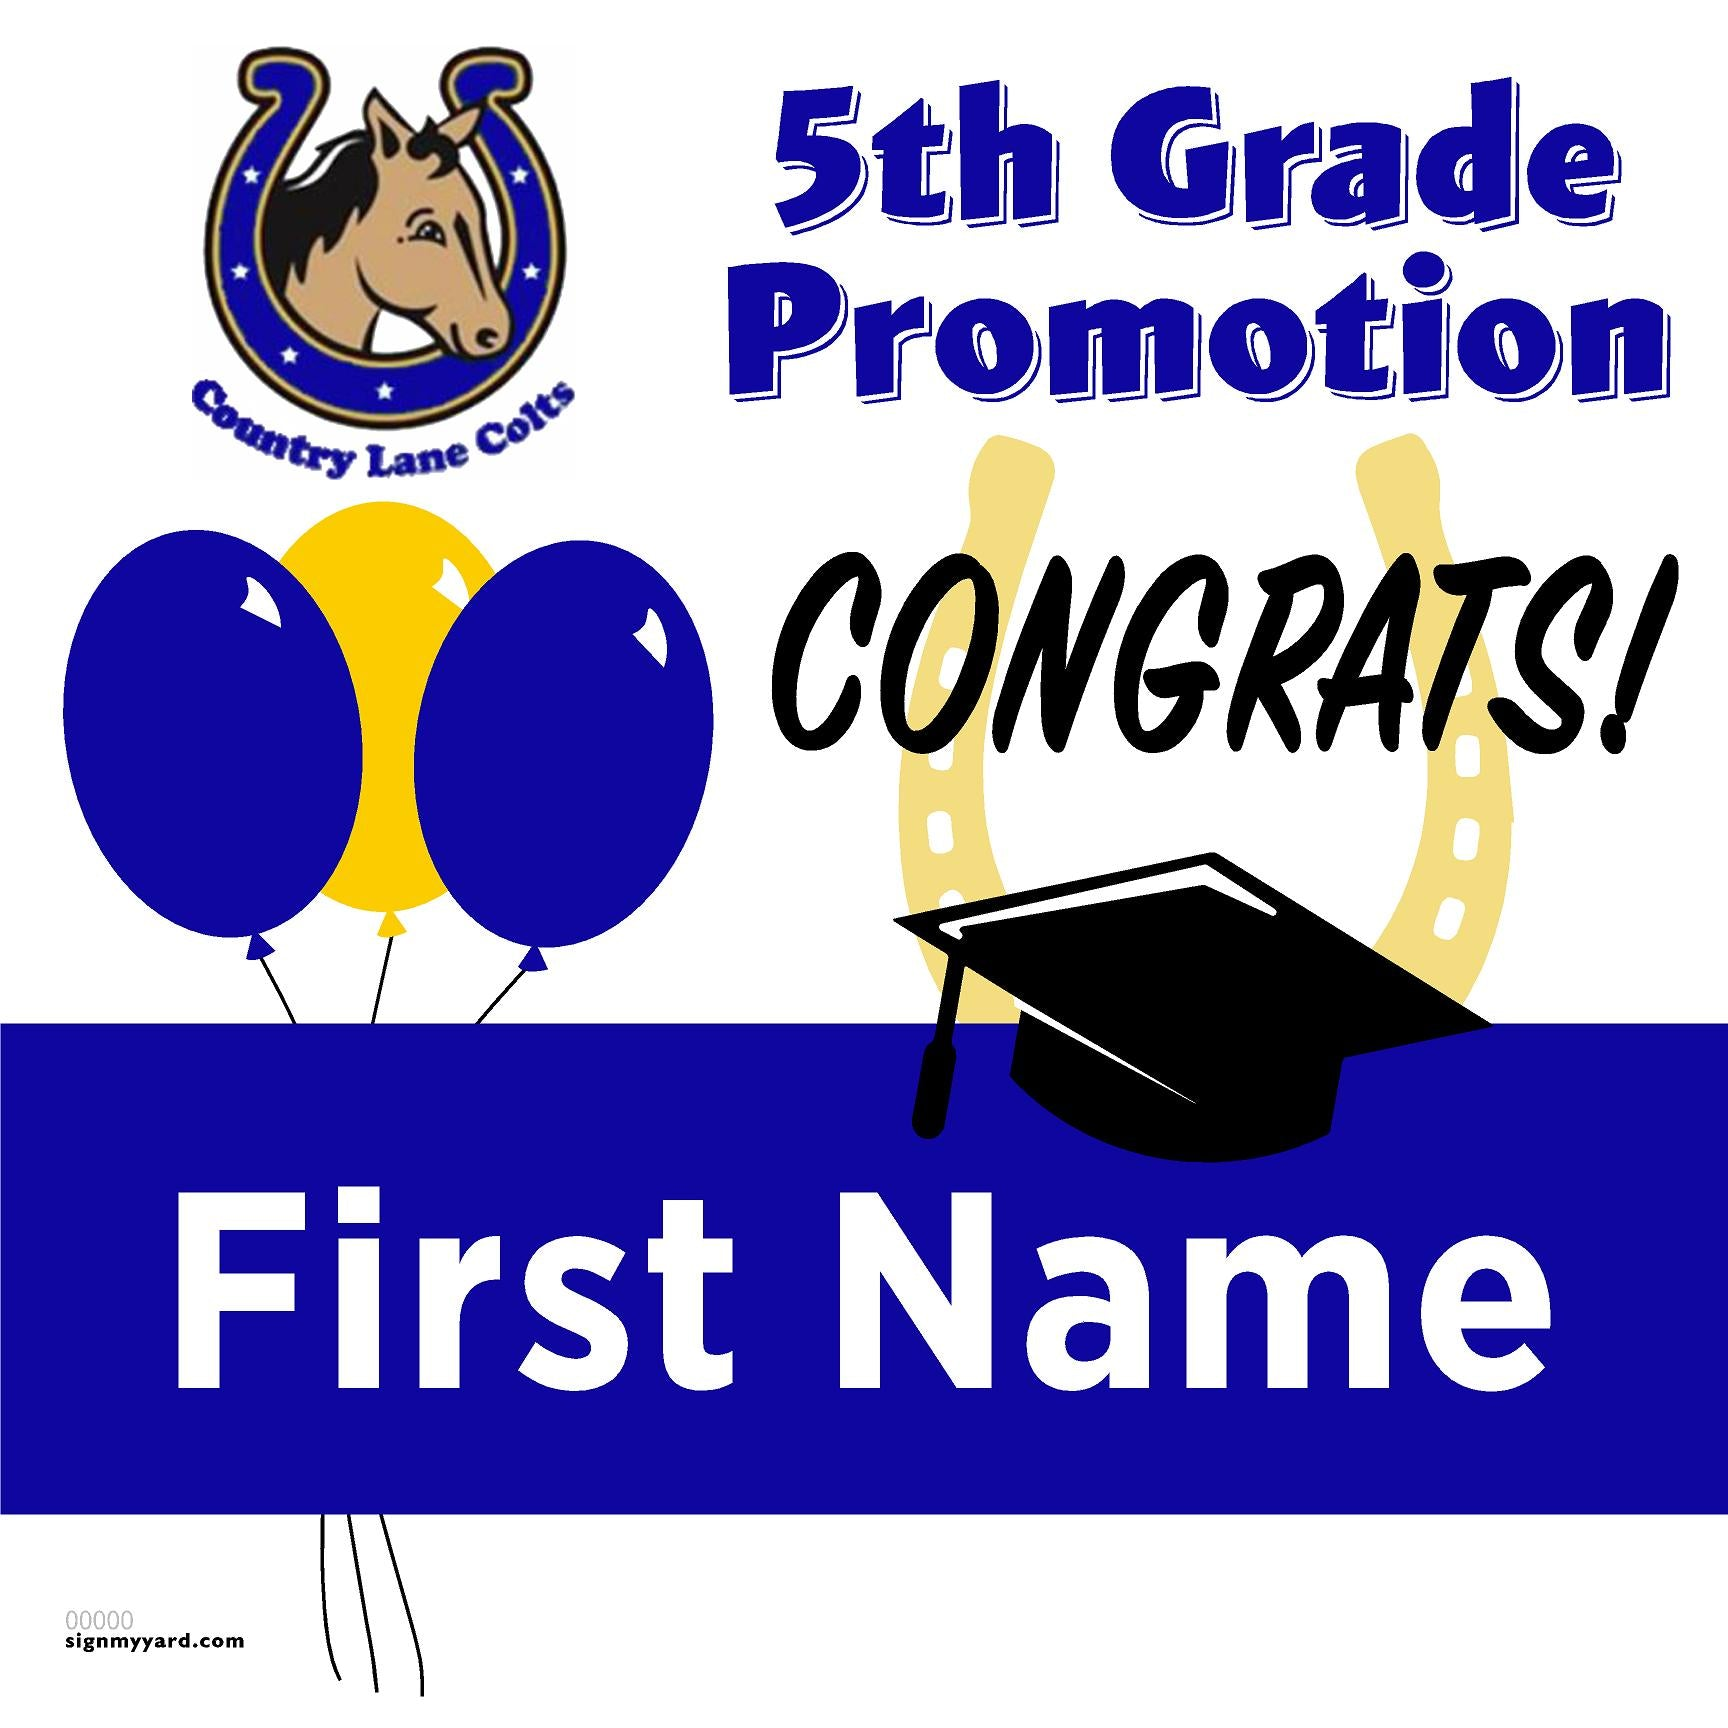 Country Lane Elementary School 5th Grade Promotion 24x24 #shineon2027 Yard Sign (Option A)